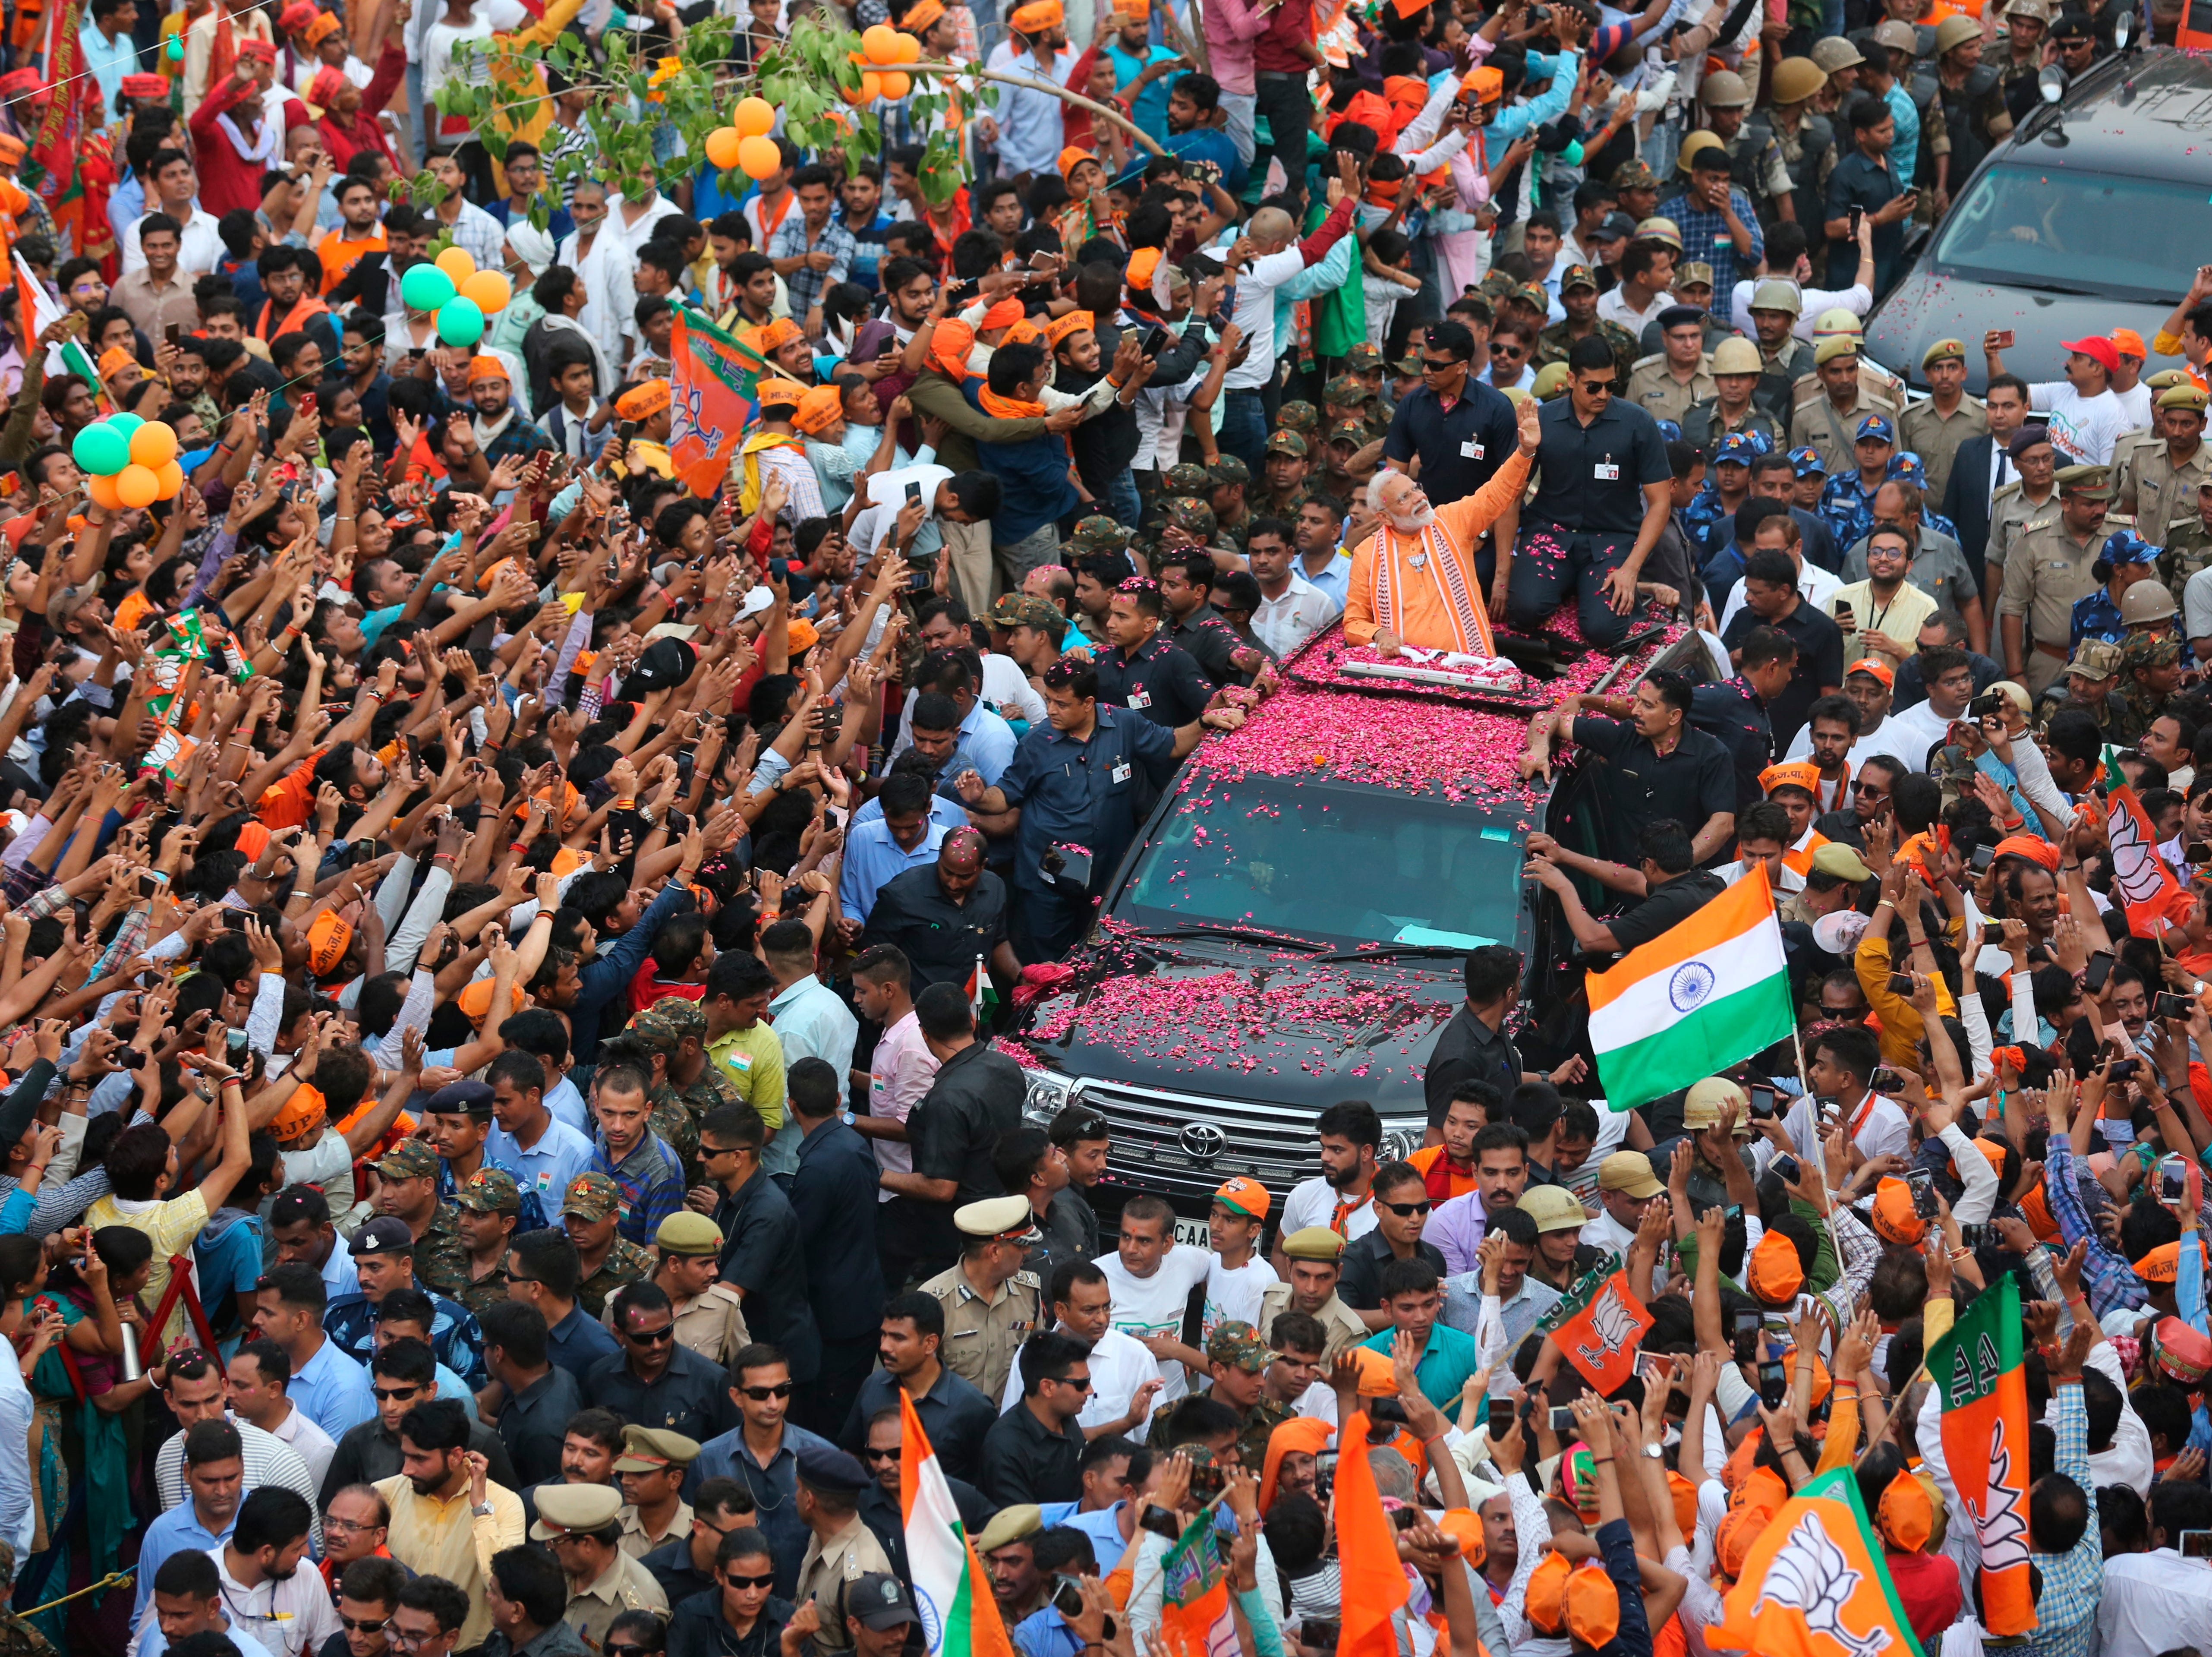 Indian Prime Minister Narendra Modi waves to the crowd during a political campaign road show in Varanasi, India, Thursday, April 25, 2019. The ongoing general election is seen as a referendum on Modi's five-year rule. He has adopted a nationalist pitch in trying to win votes from the country's Hindu majority by projecting a tough stance against Pakistan, India's Muslim-majority neighbor and archrival.